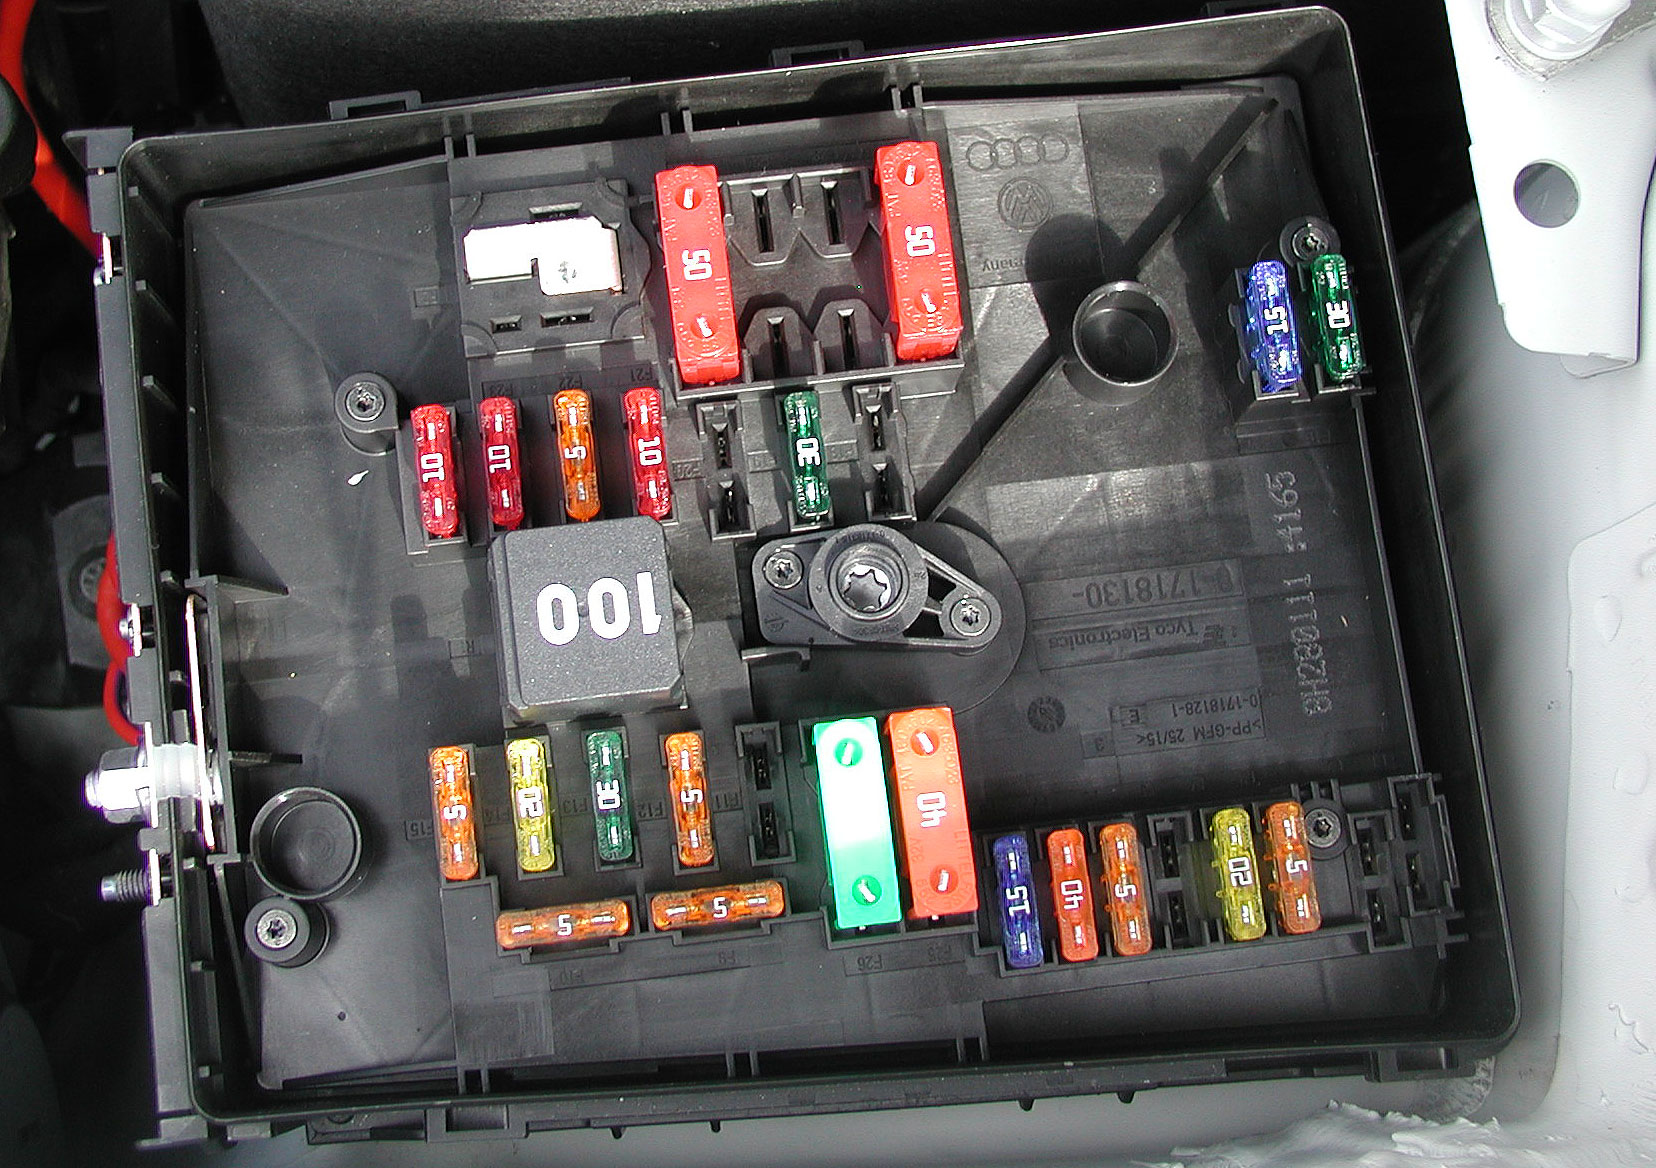 engineFuses2 golf mkv 1 9 tdi rcd 310 battery drain the volkswagen club of vw golf mk6 fuse box diagram at edmiracle.co